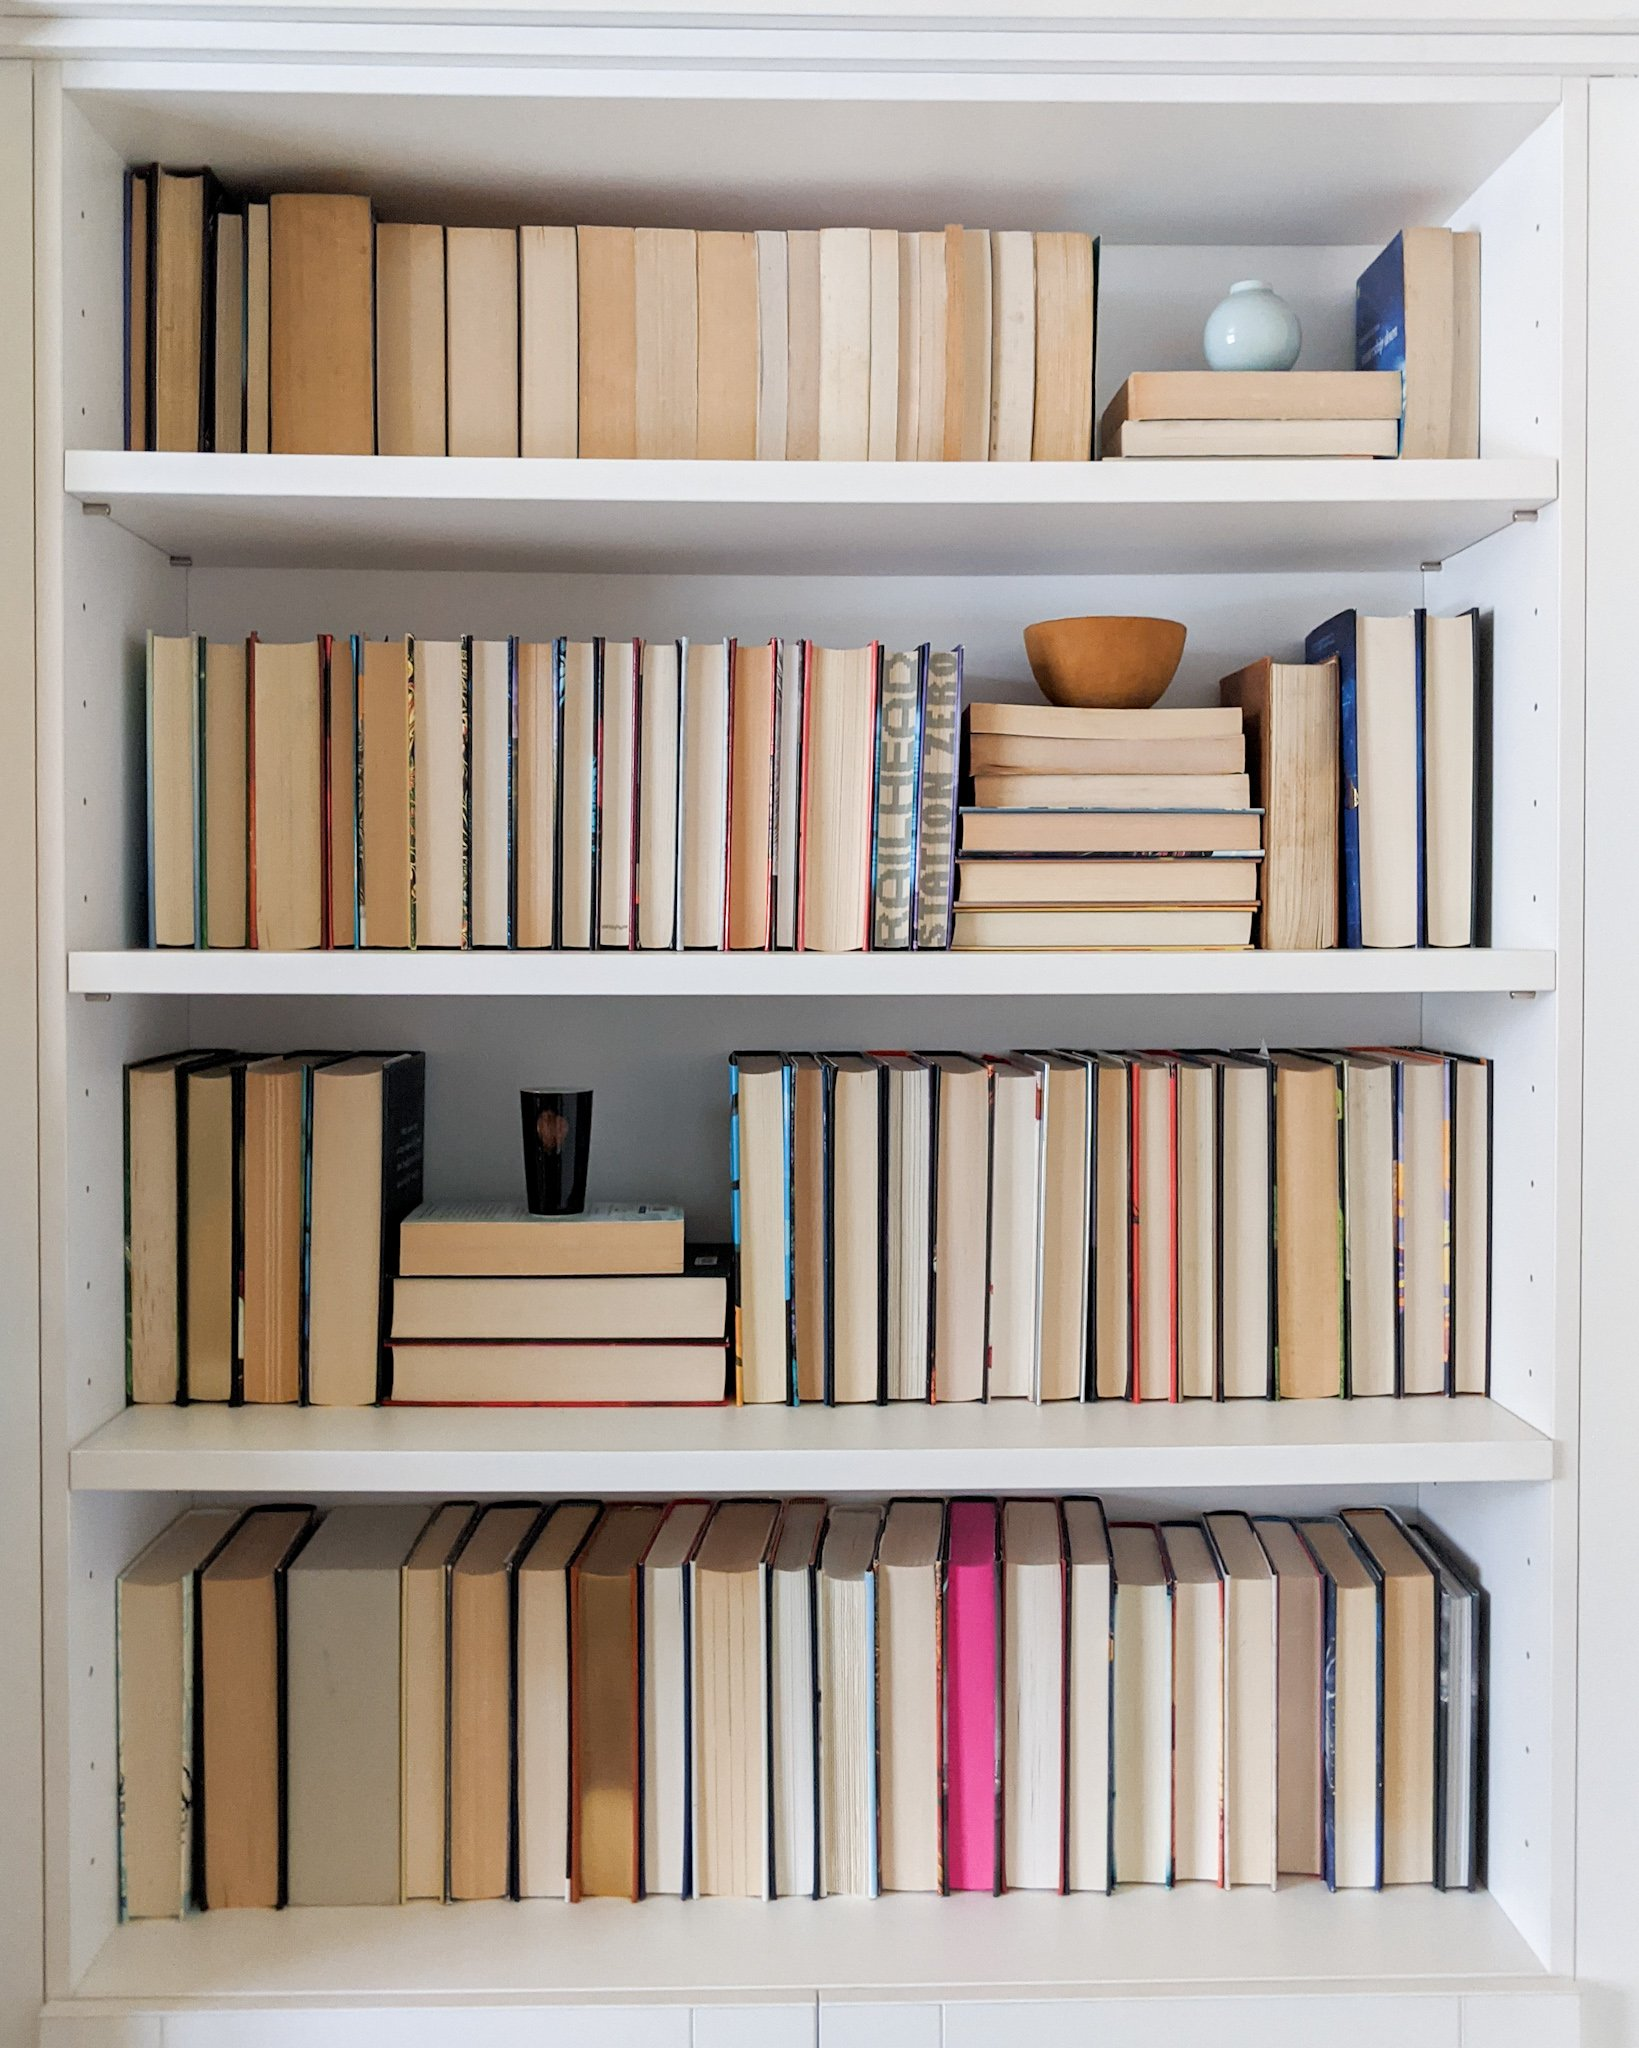 A-bookshelf-display-with-books-arranged-backwards so that the foreedge pages show